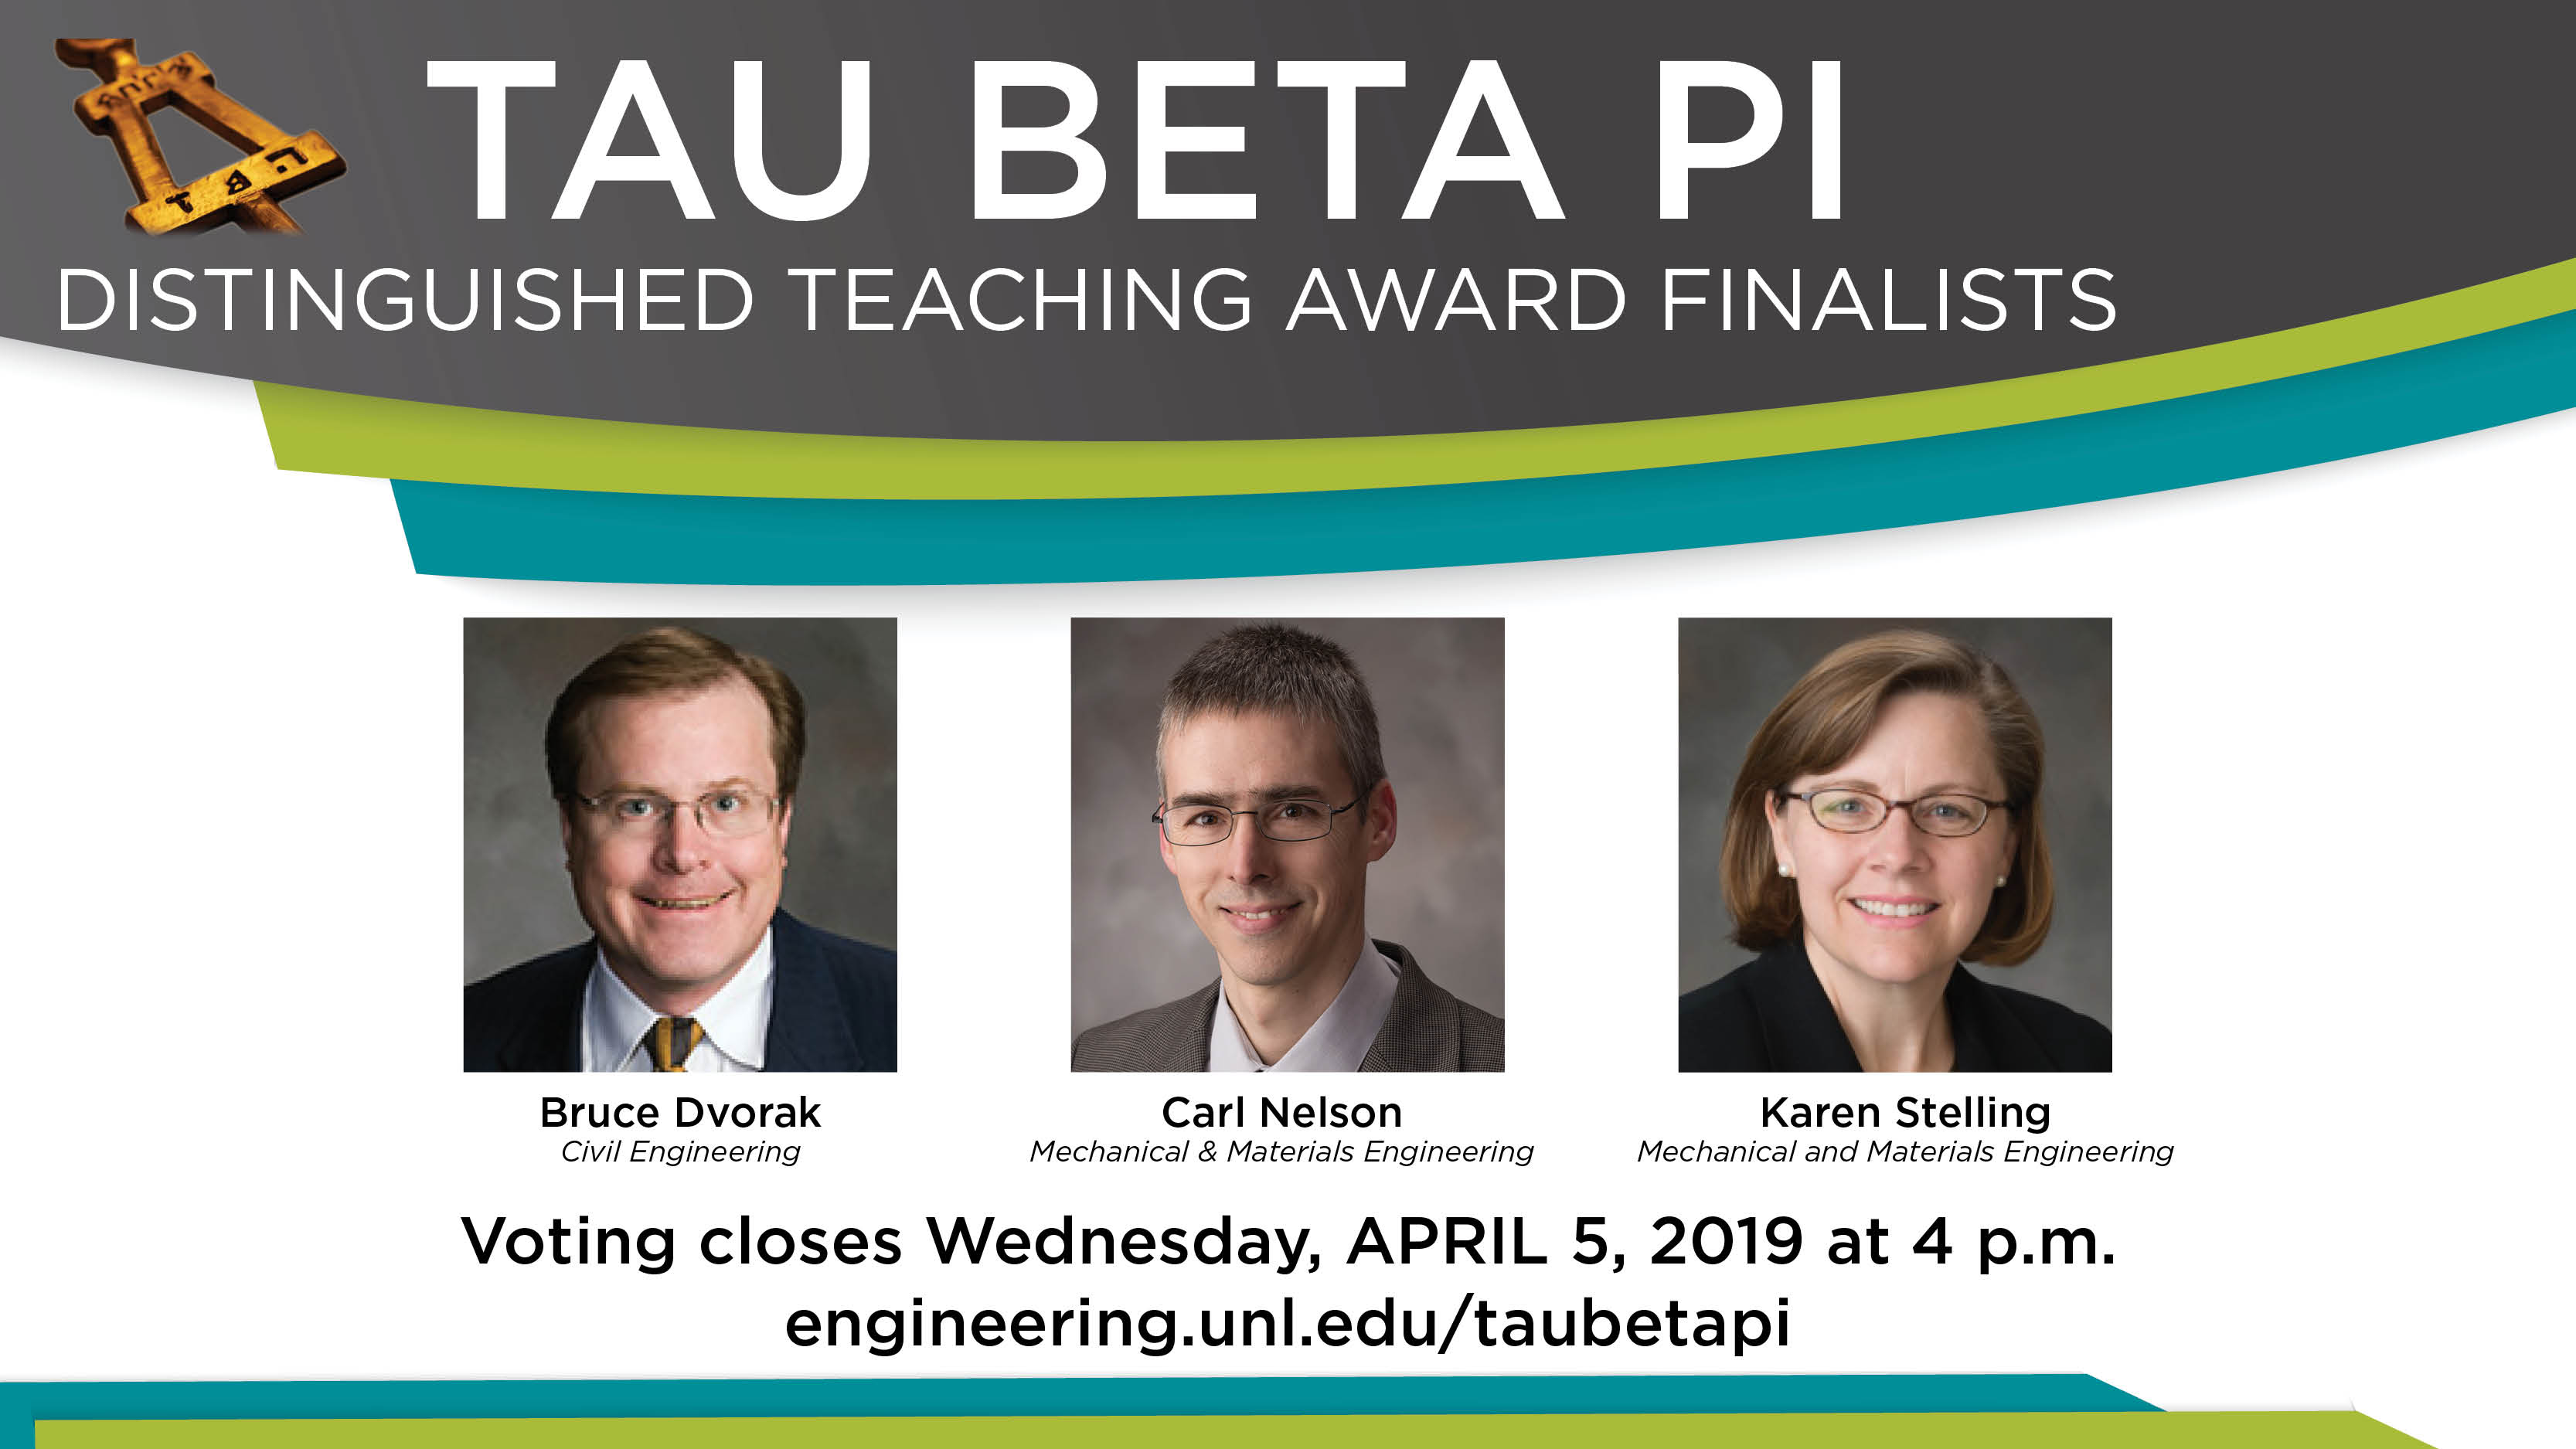 Bruce Dvorak, Carl Nelson and Karen Stelling are finalists for the 2019 Tau Beta Pi Distinguished Teaching Award.